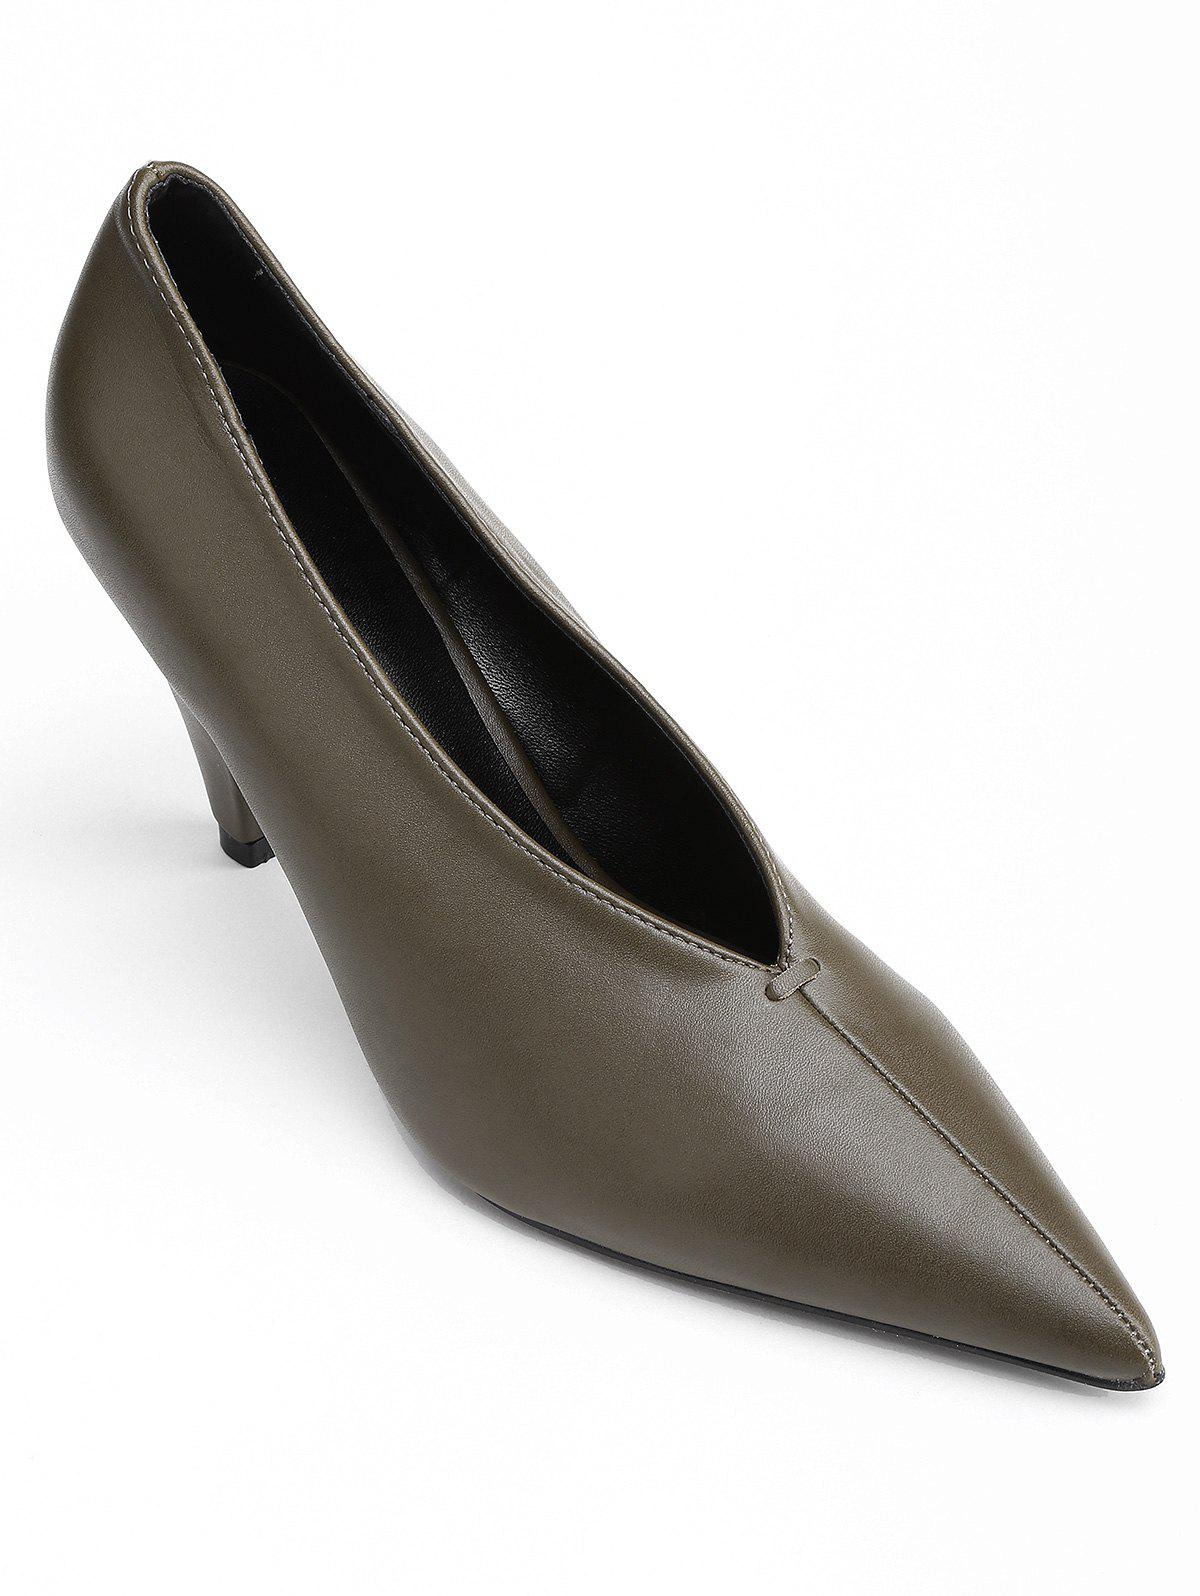 Point Toe V Cut High Heel Pumps - CAMEL BROWN 39